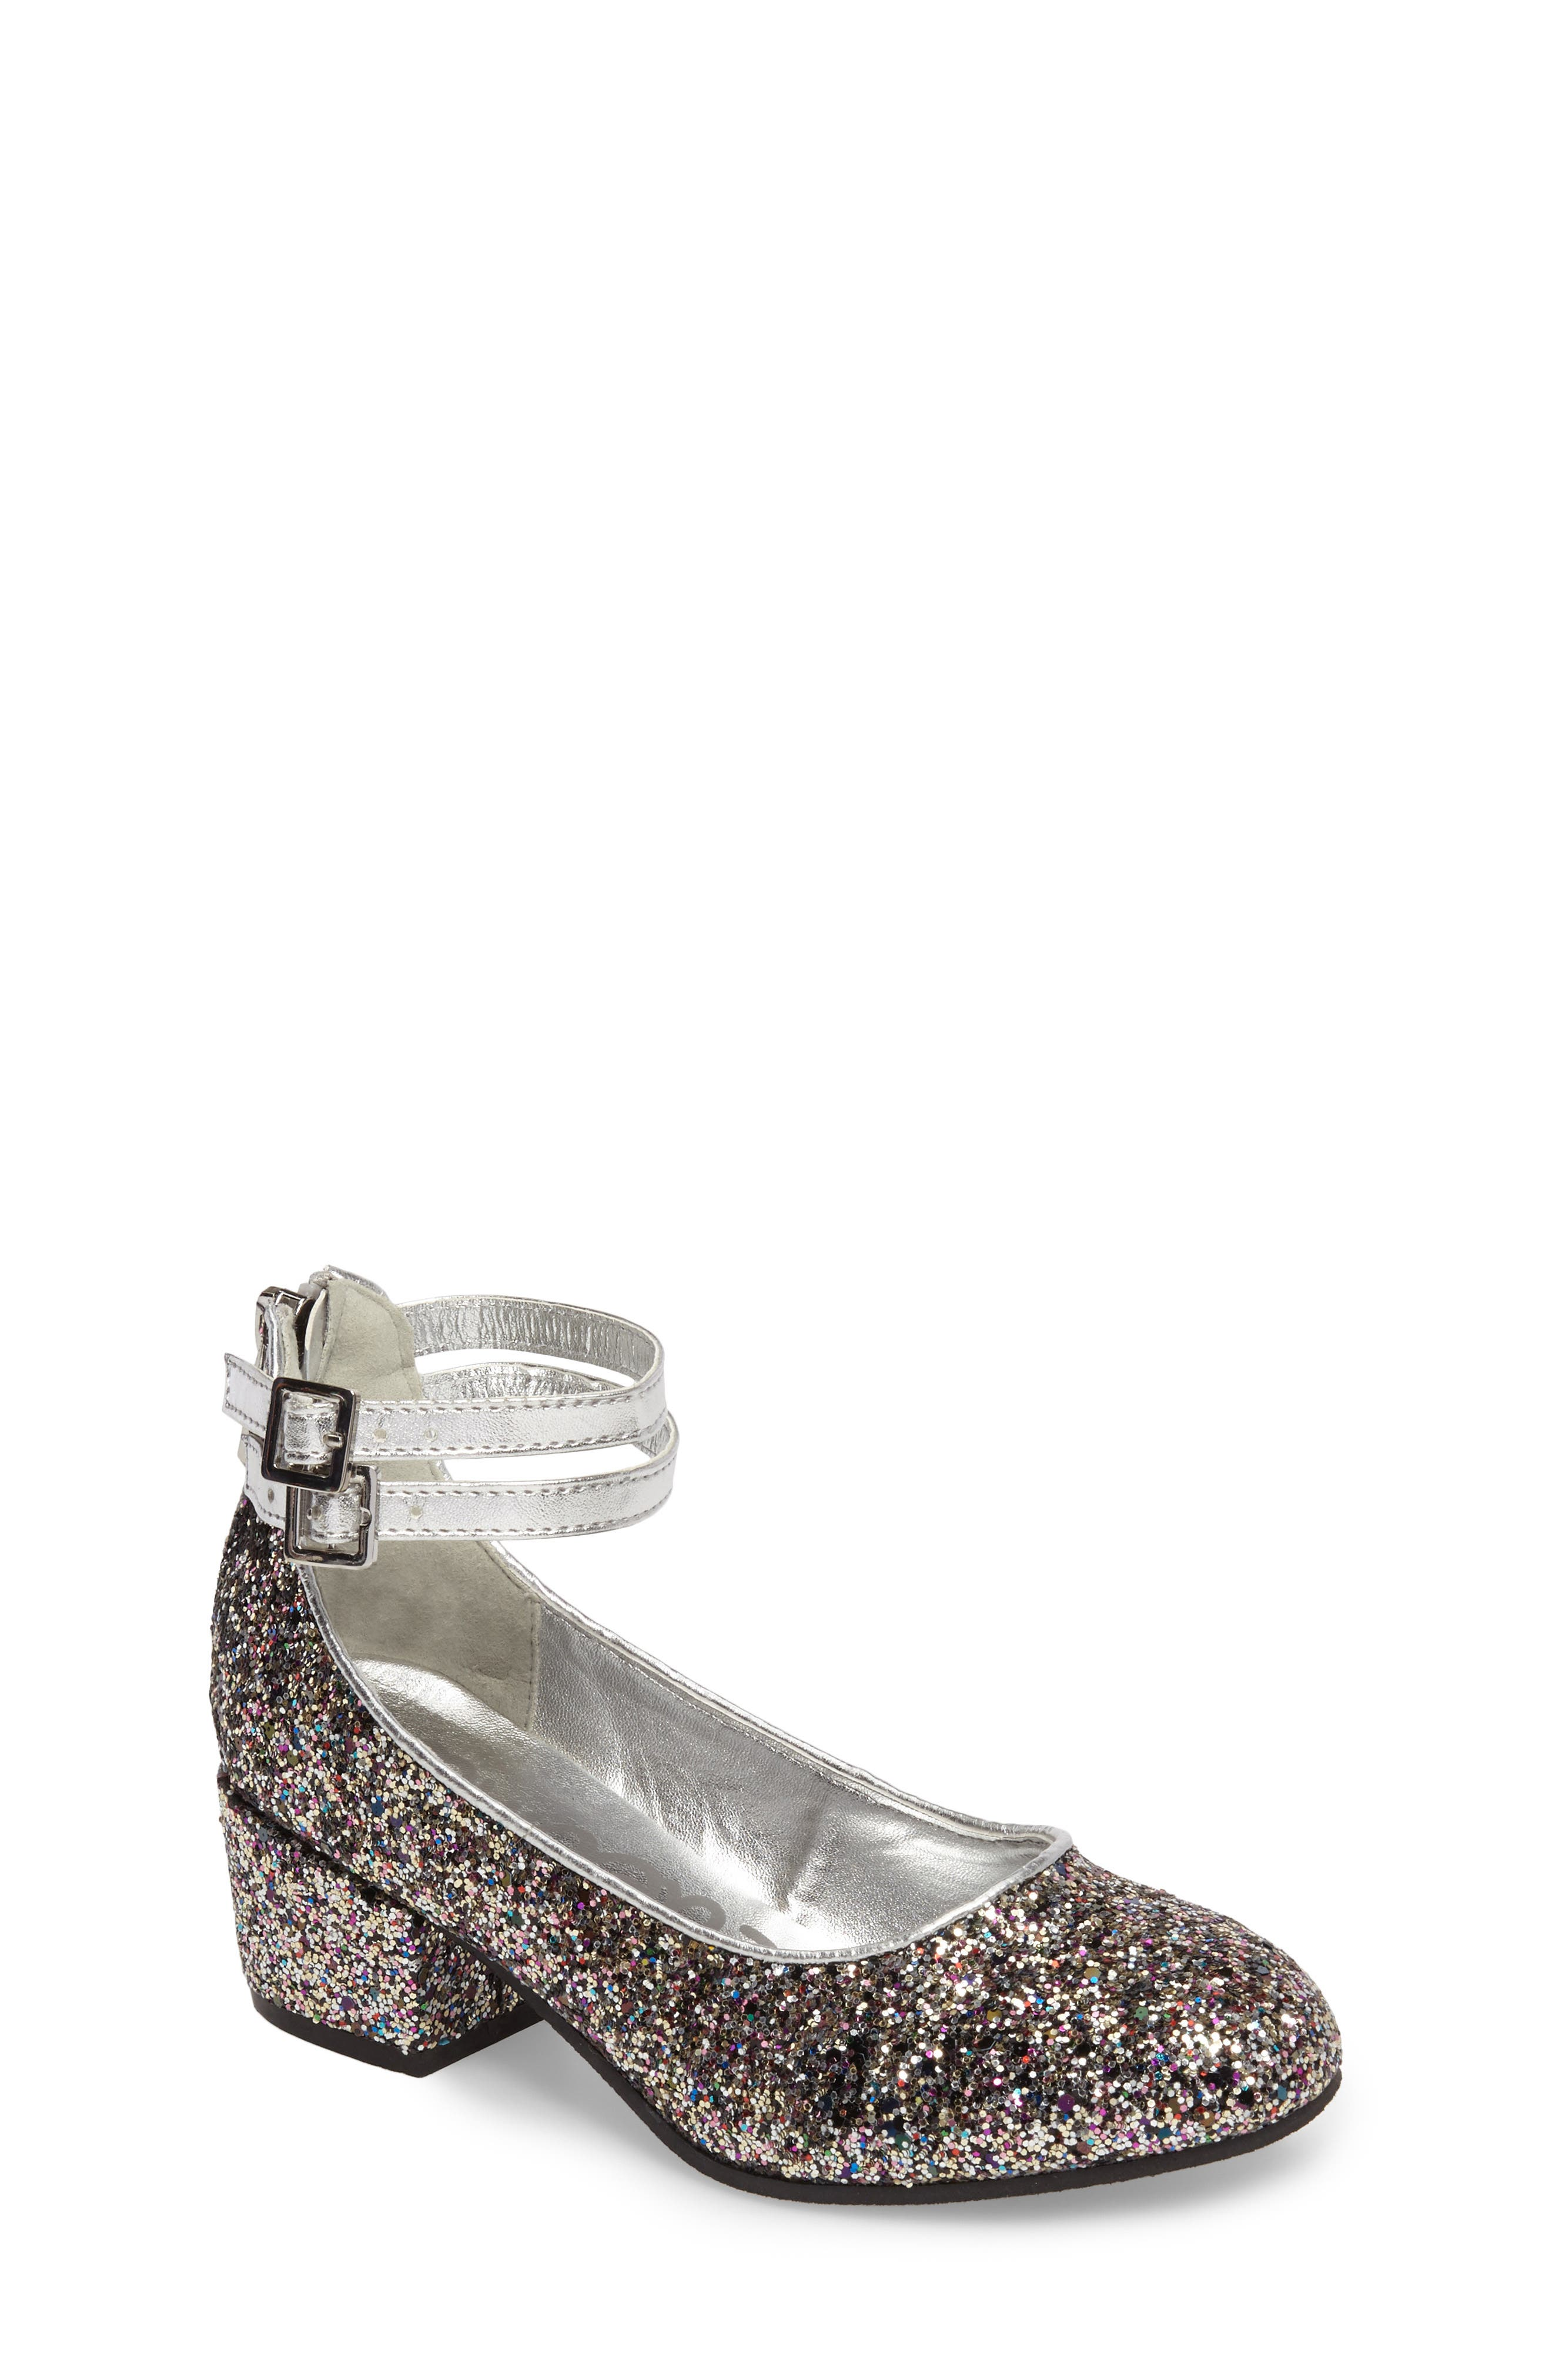 Sam Edelman Evelyn Bree Ankle Strap Glitter Pump (Toddler, Little Kid & Big Kid)